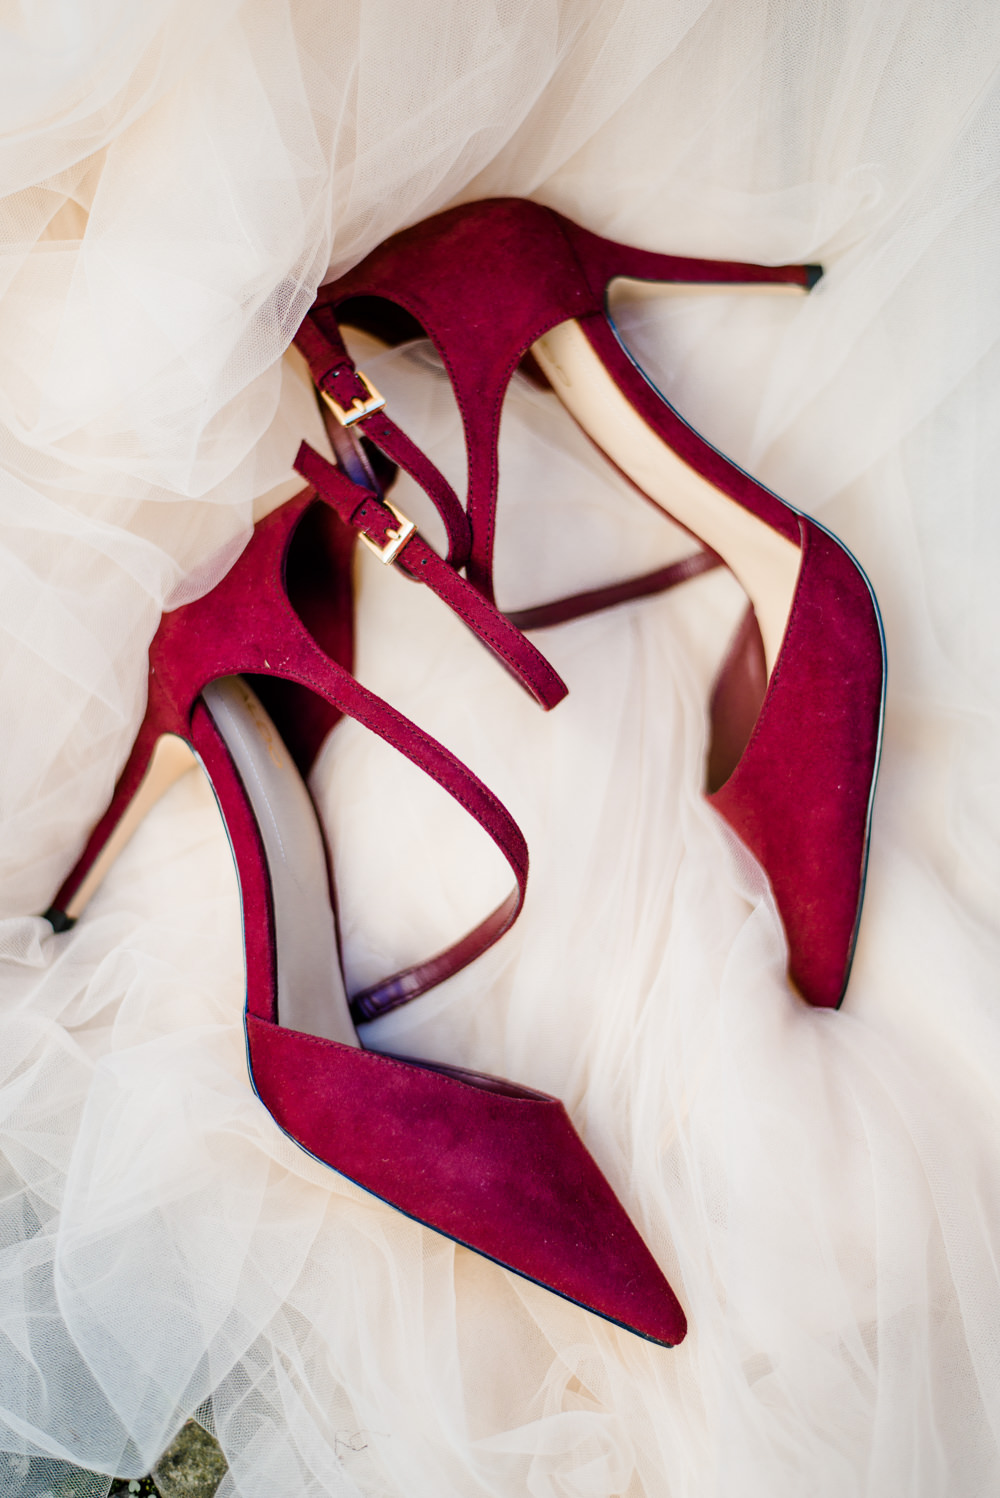 Red Shoes Bride Bridal Autumnal Fairytale Wedding Ideas Miriam Peuser Photography